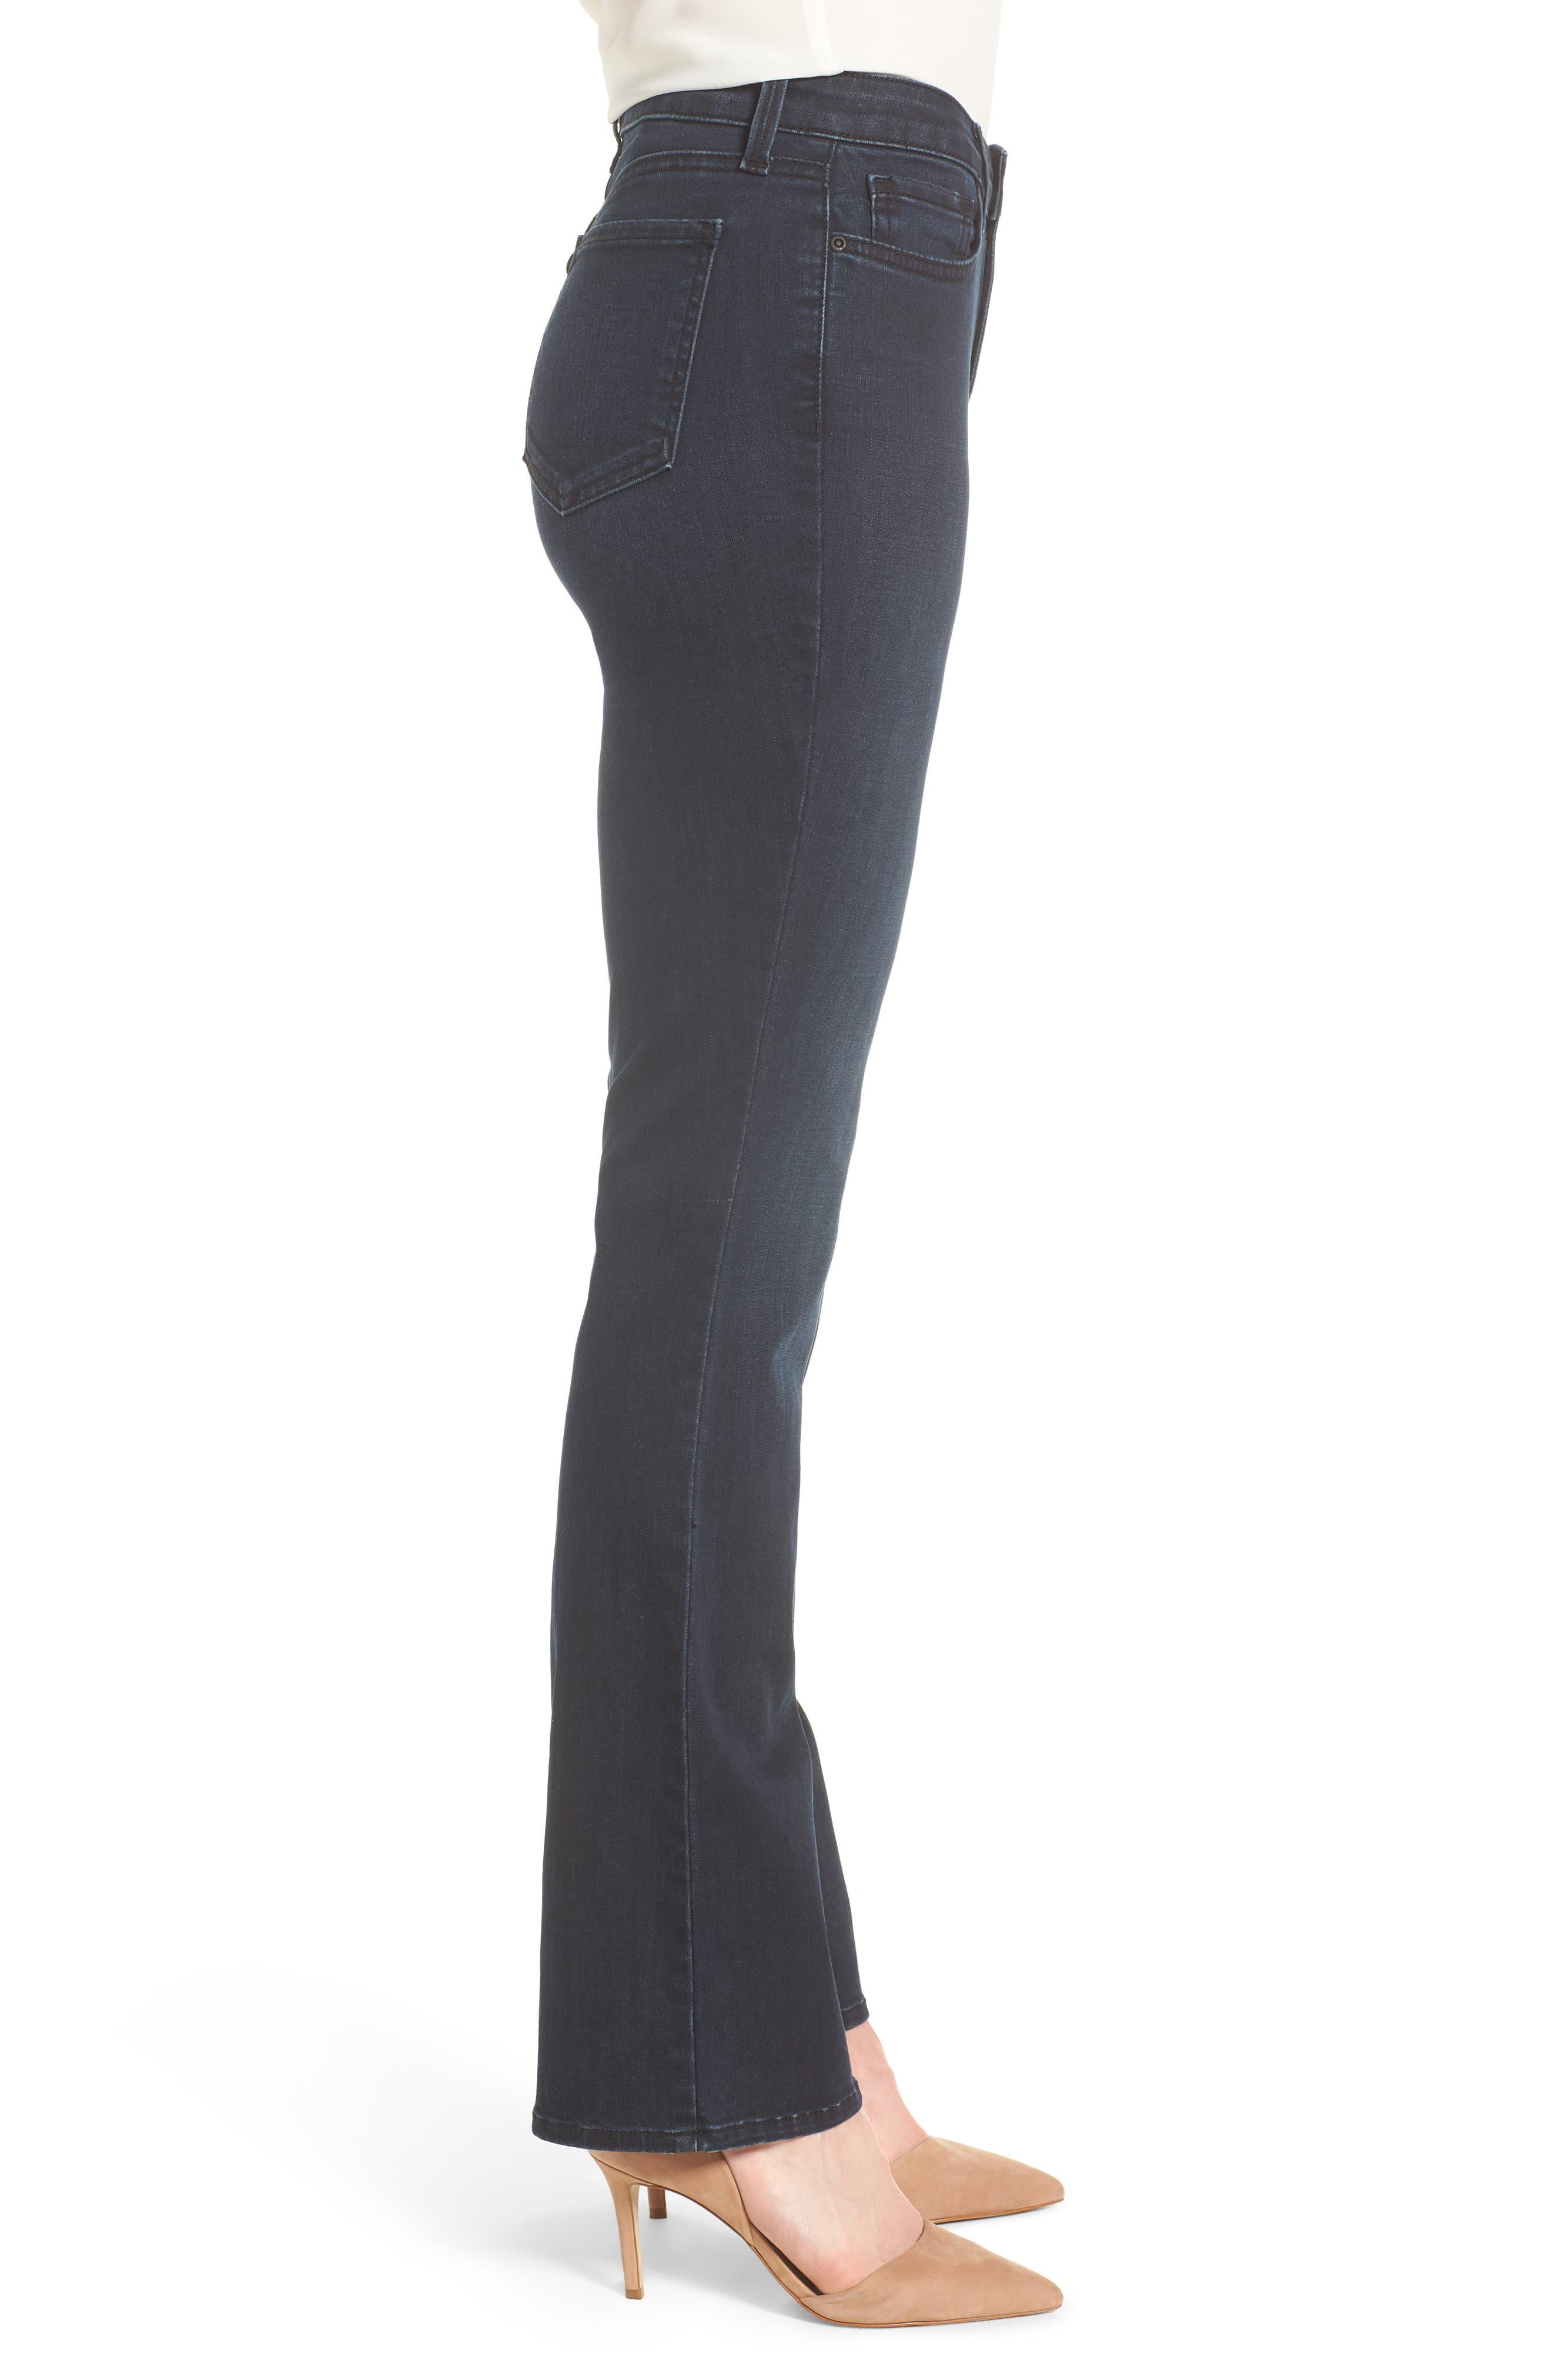 Barbara Bootcut Stretch Skinny Jeans,                             Alternate thumbnail 3, color,                             407